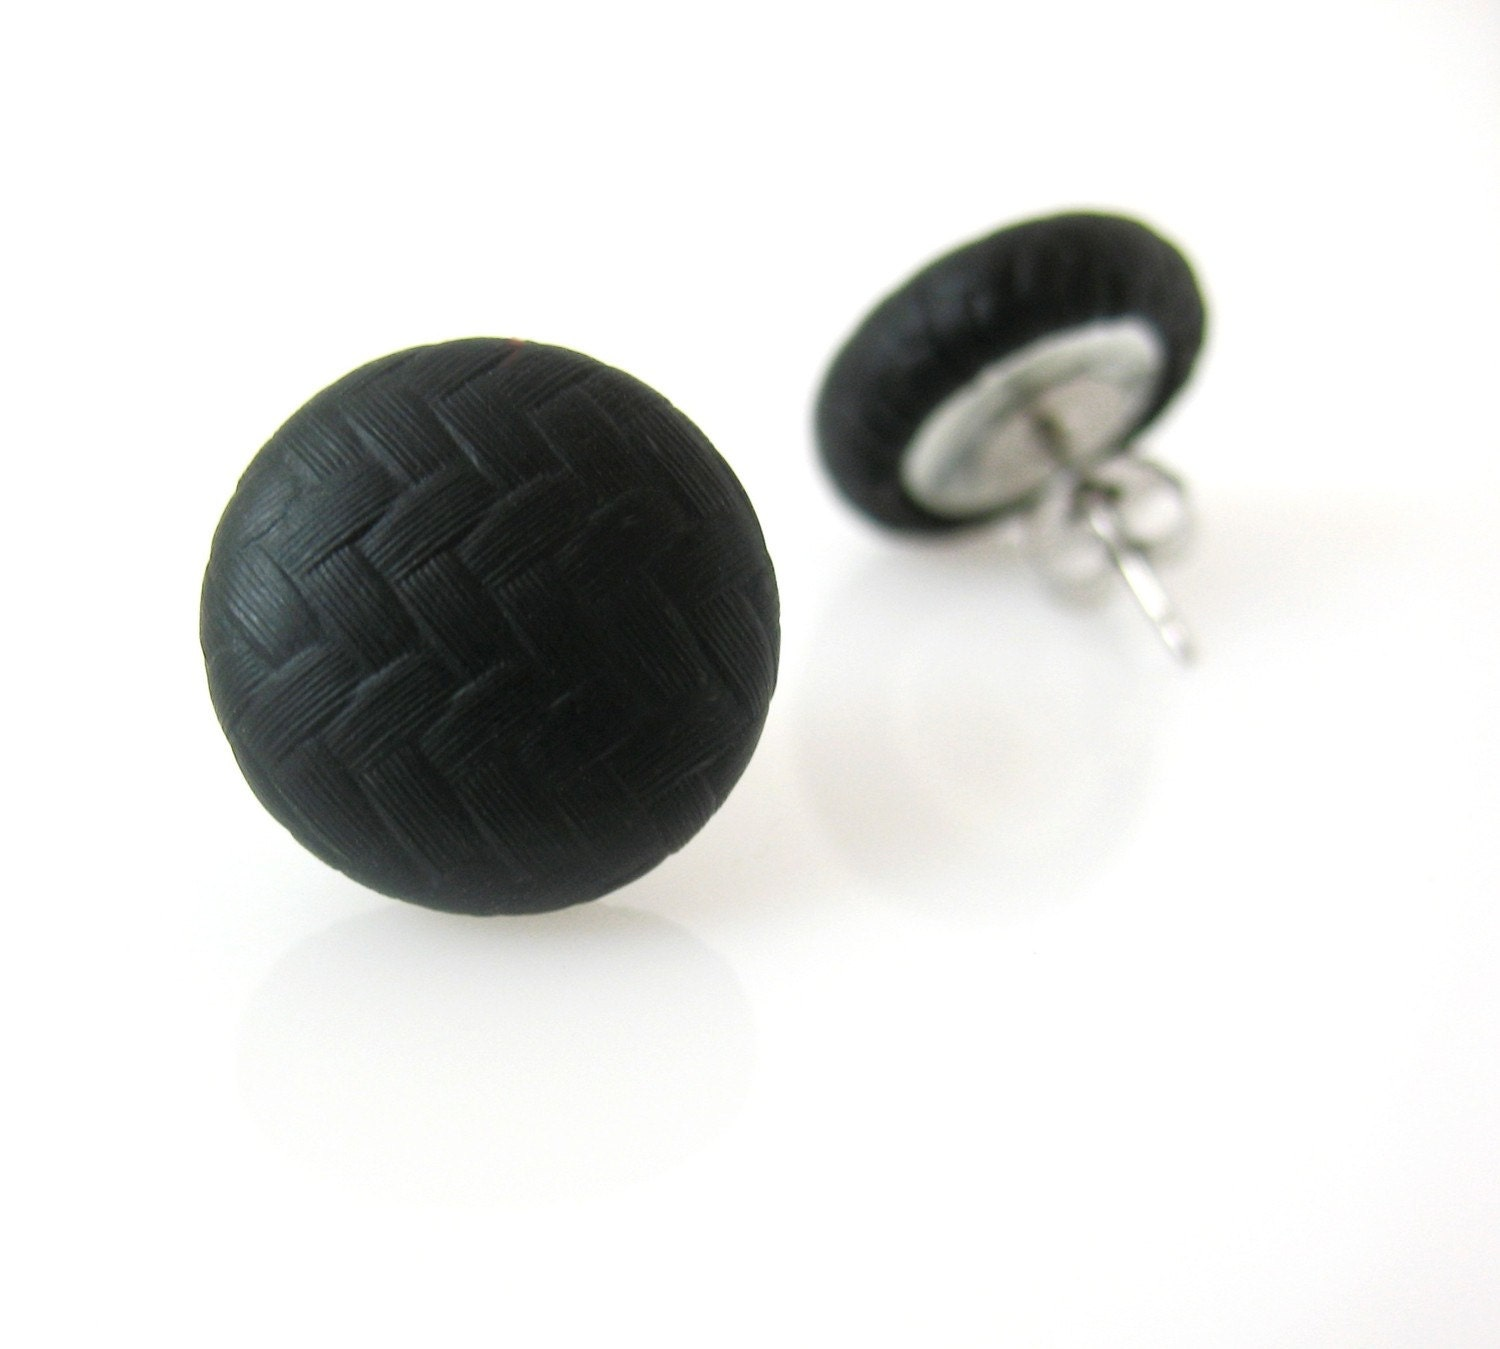 Button Earrings: Carbon Fiber Black Button Earrings Handmade Covered Buttons